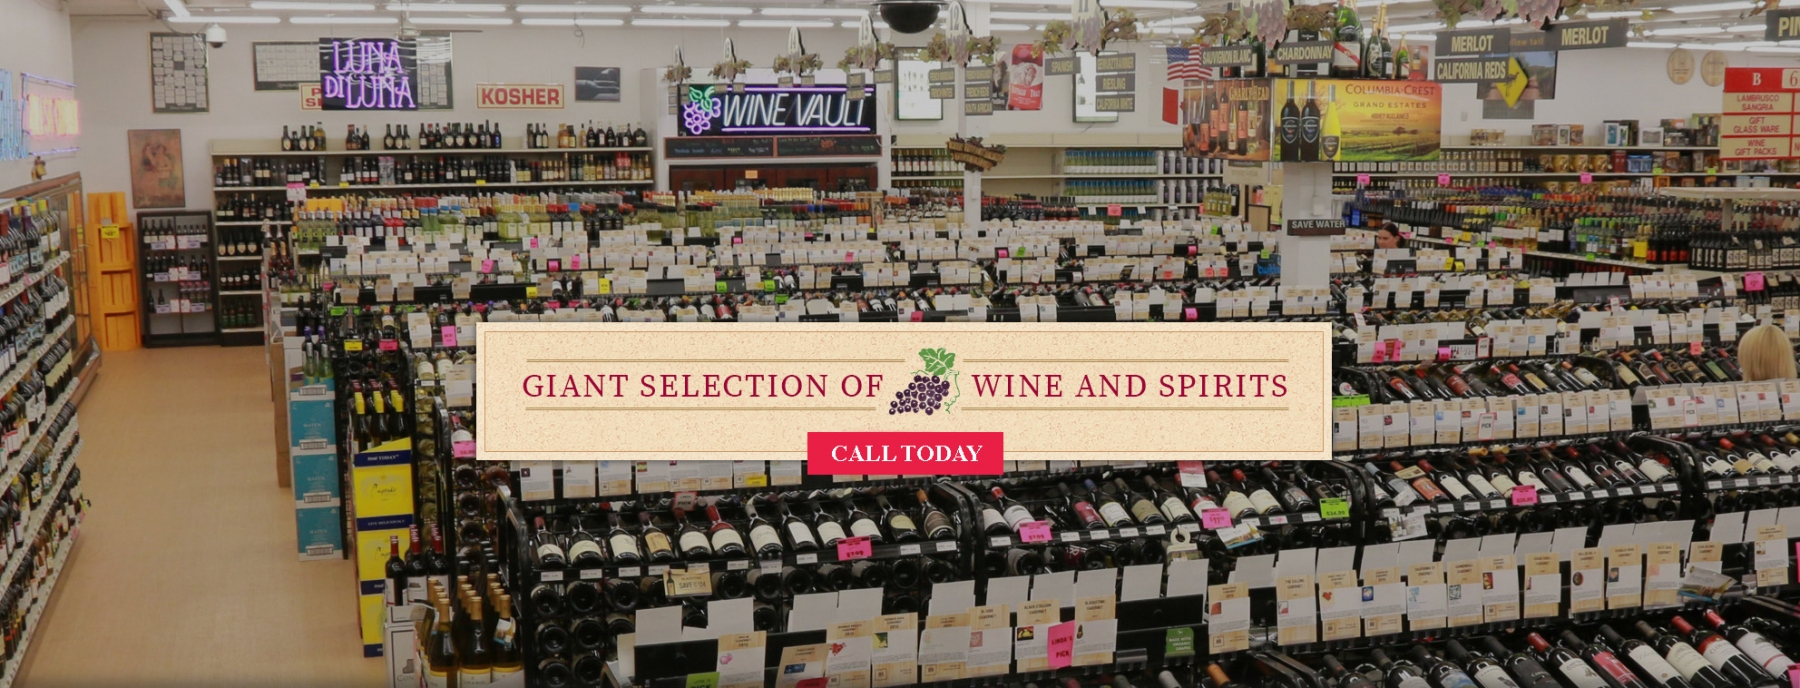 Overview Giant Slection of Wine & Spirits